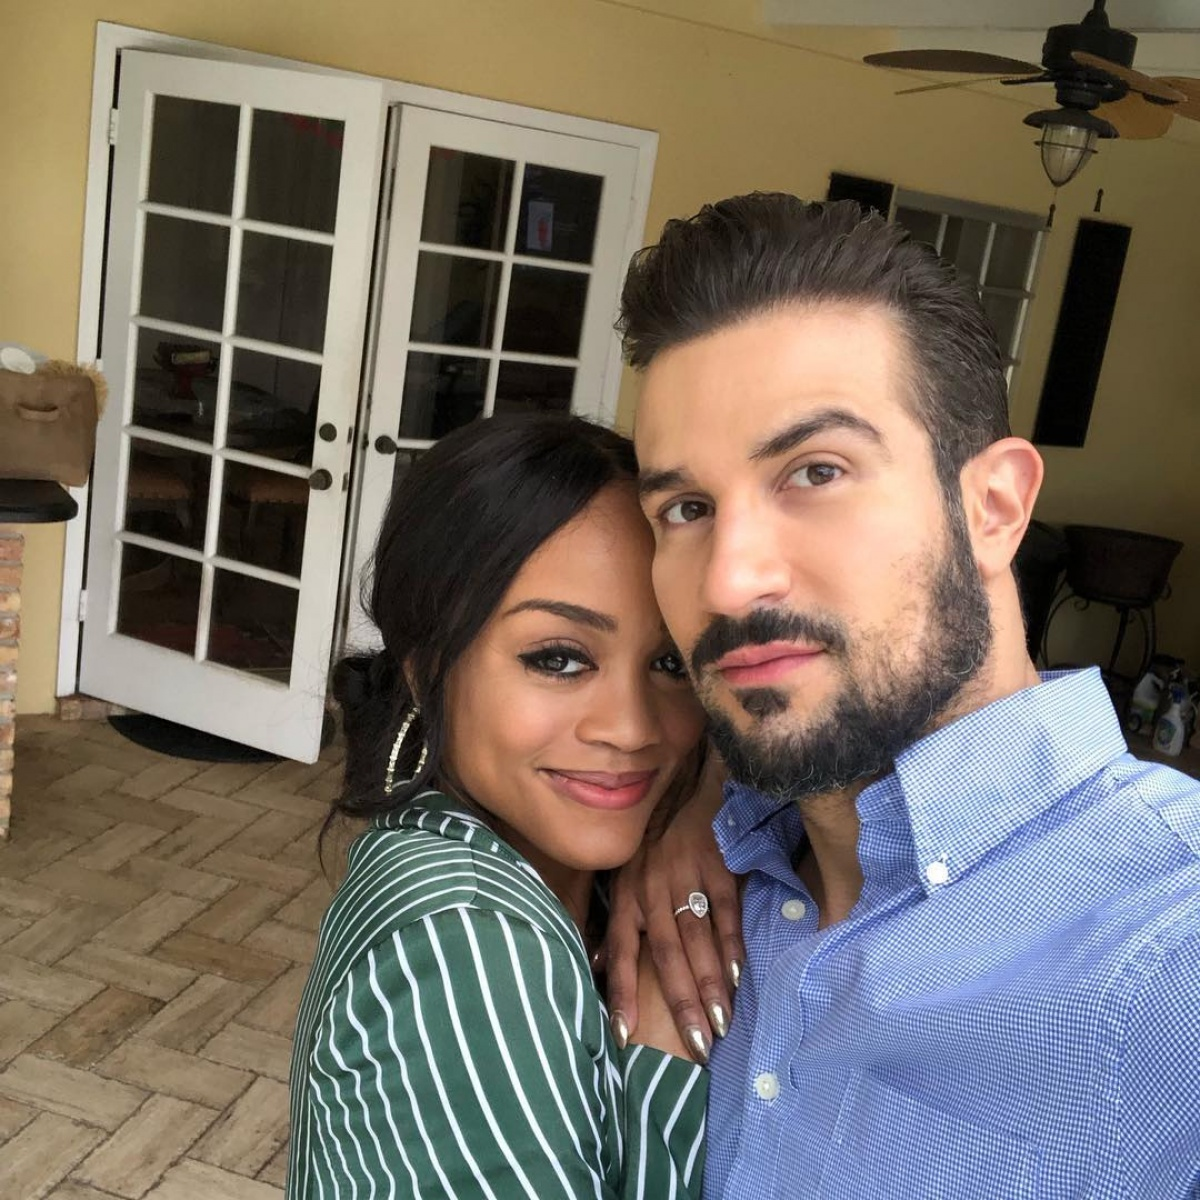 Rachel Lindsay & Bryan Abasolo - Wedding Updates - FAN Forum - Discussion  - Page 3 1069964-l